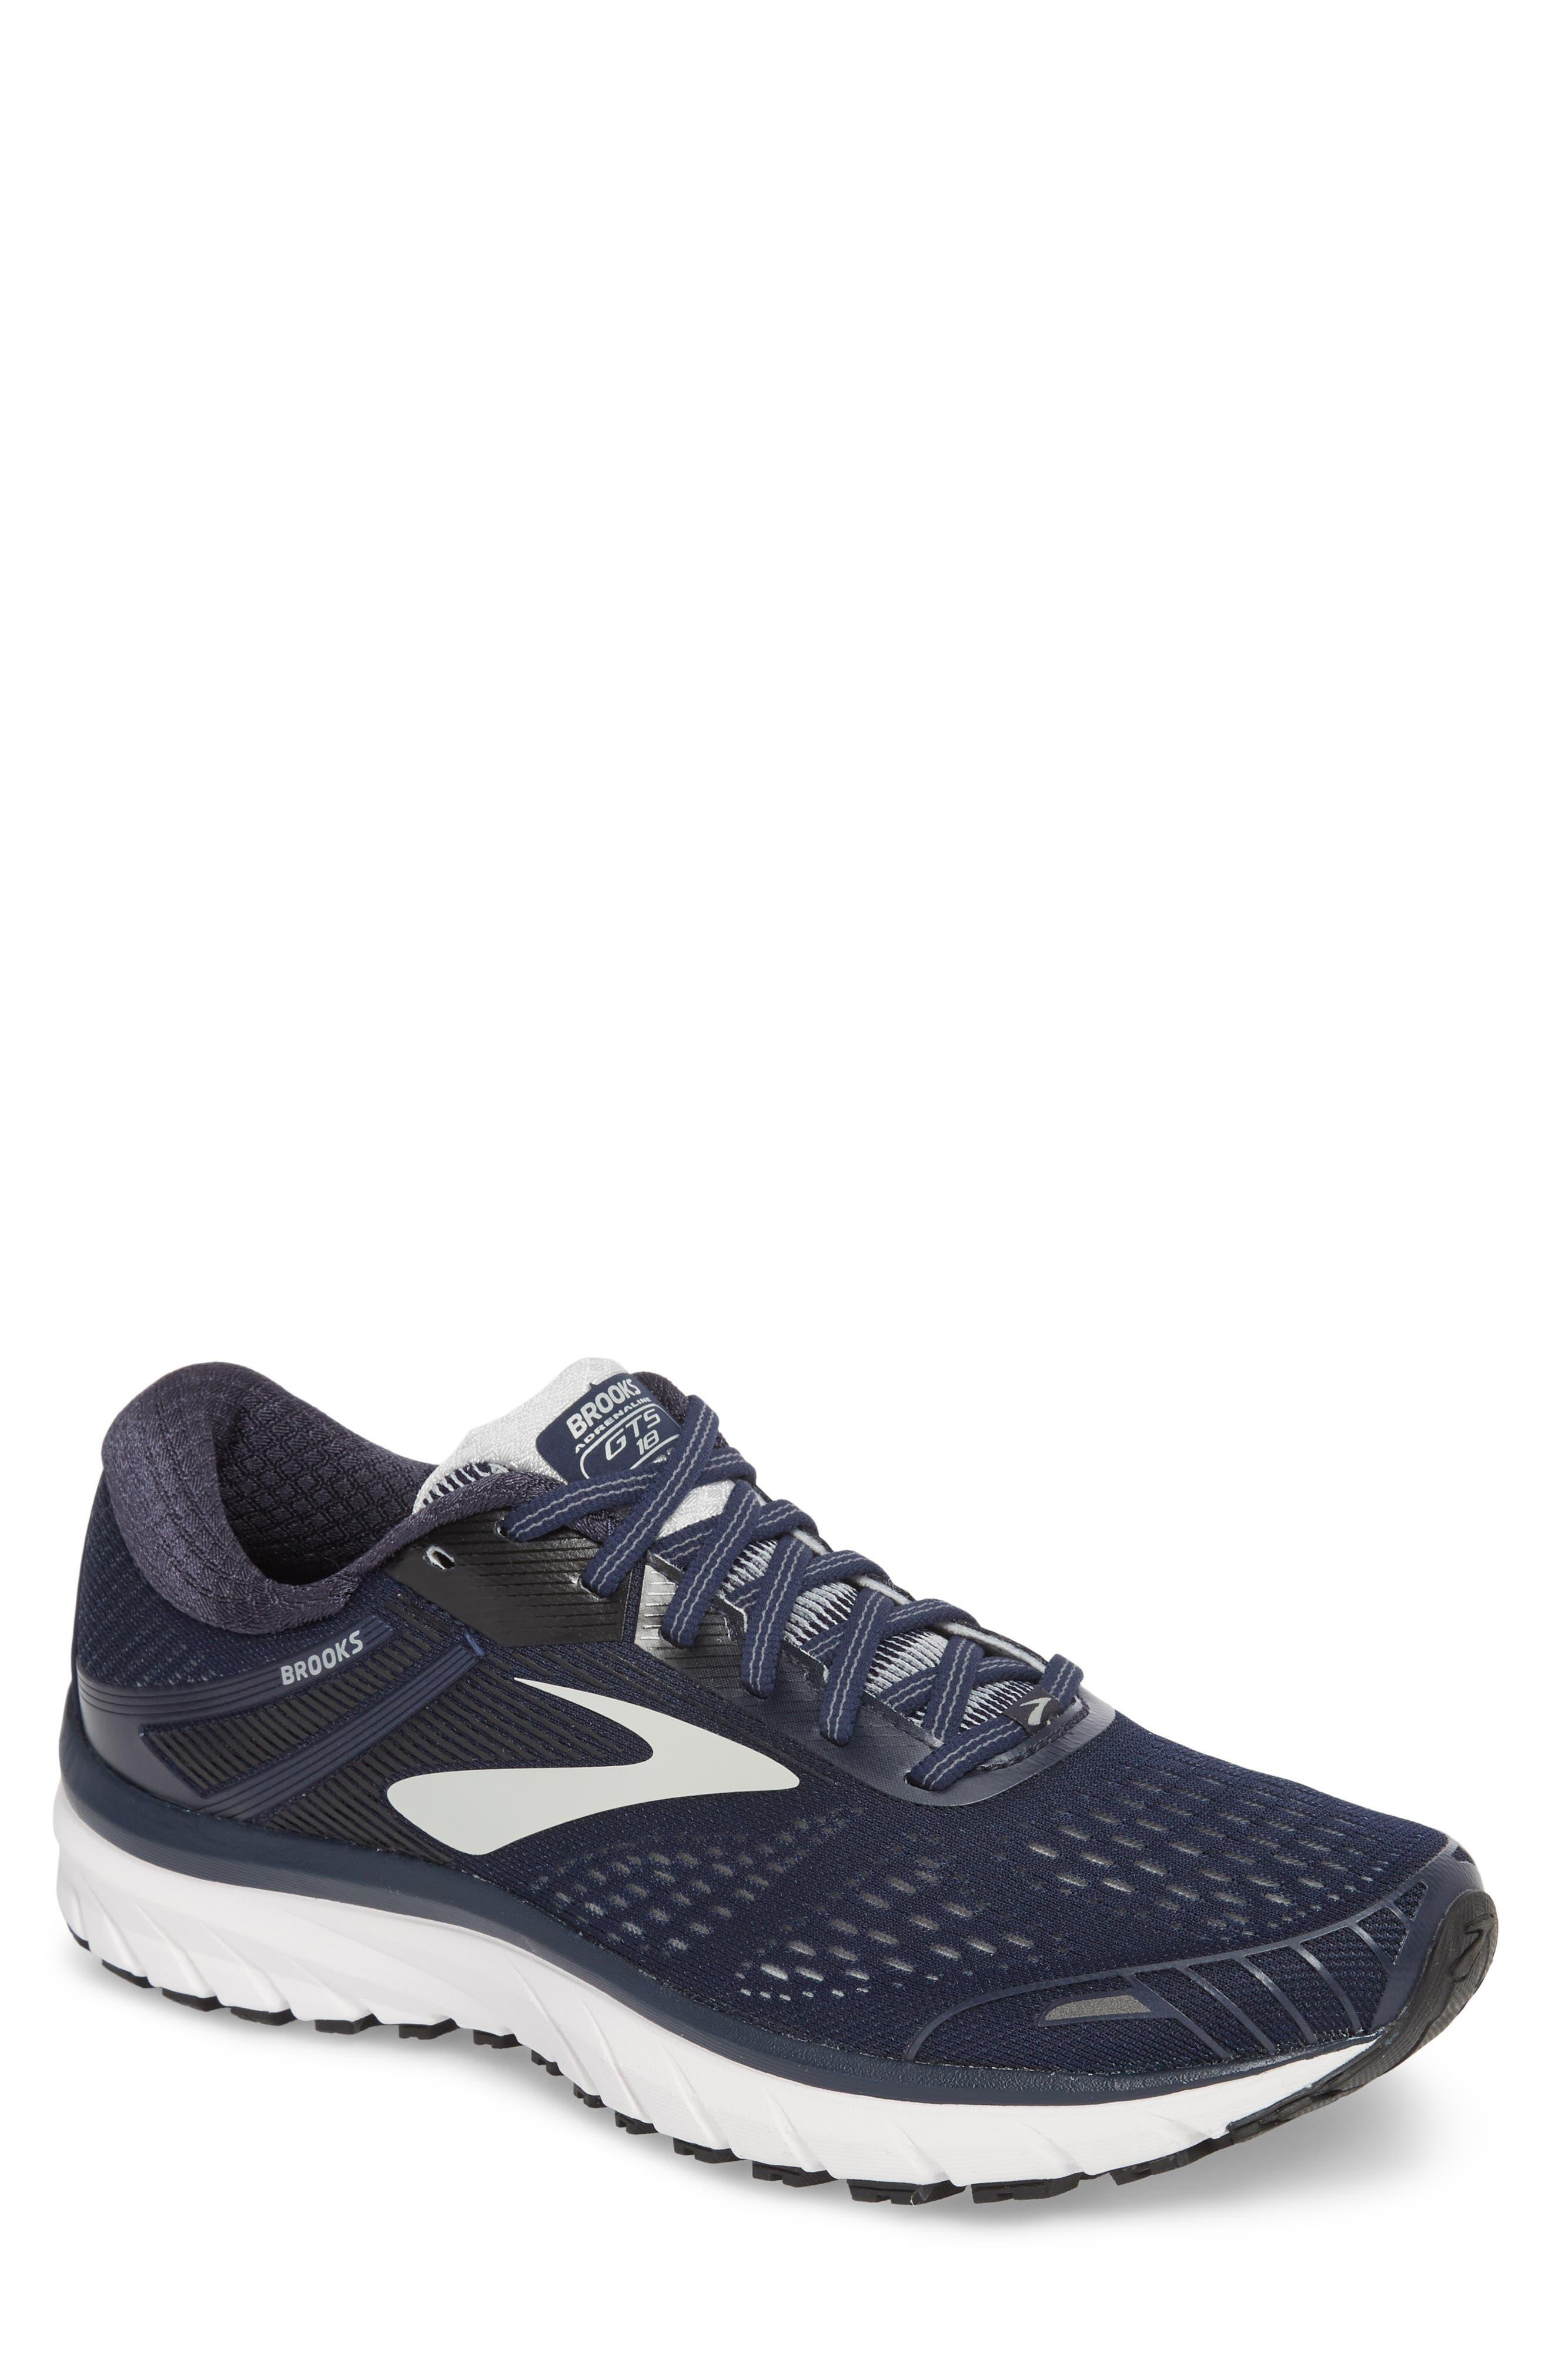 Brooks Adrenaline GTS 18 Running Shoe (Men)